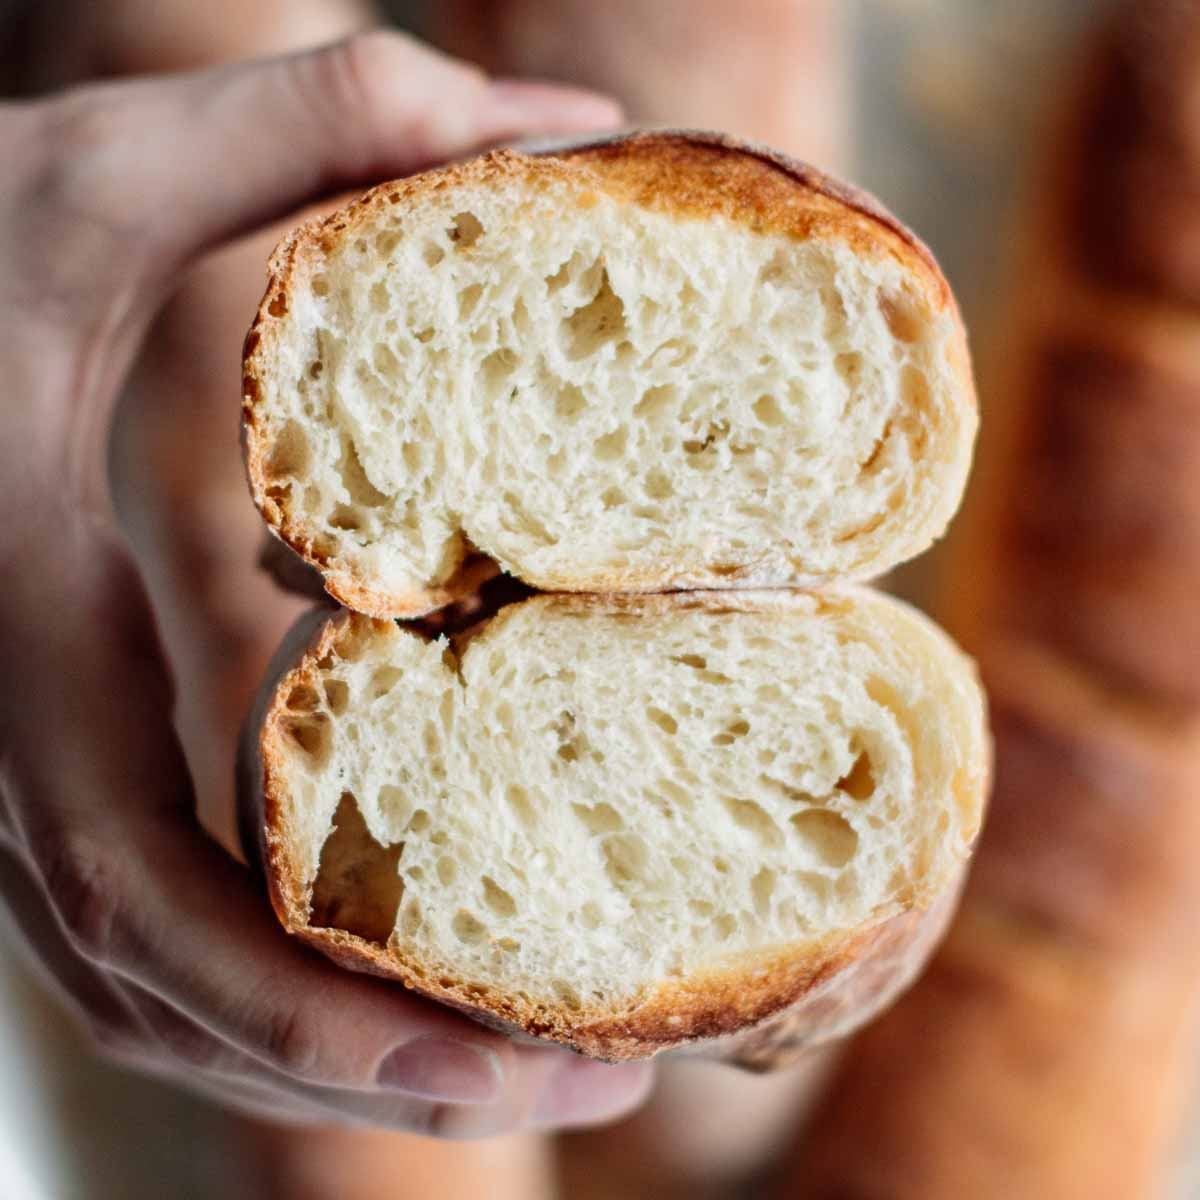 French baguette bread cut in half, showing its crumb.